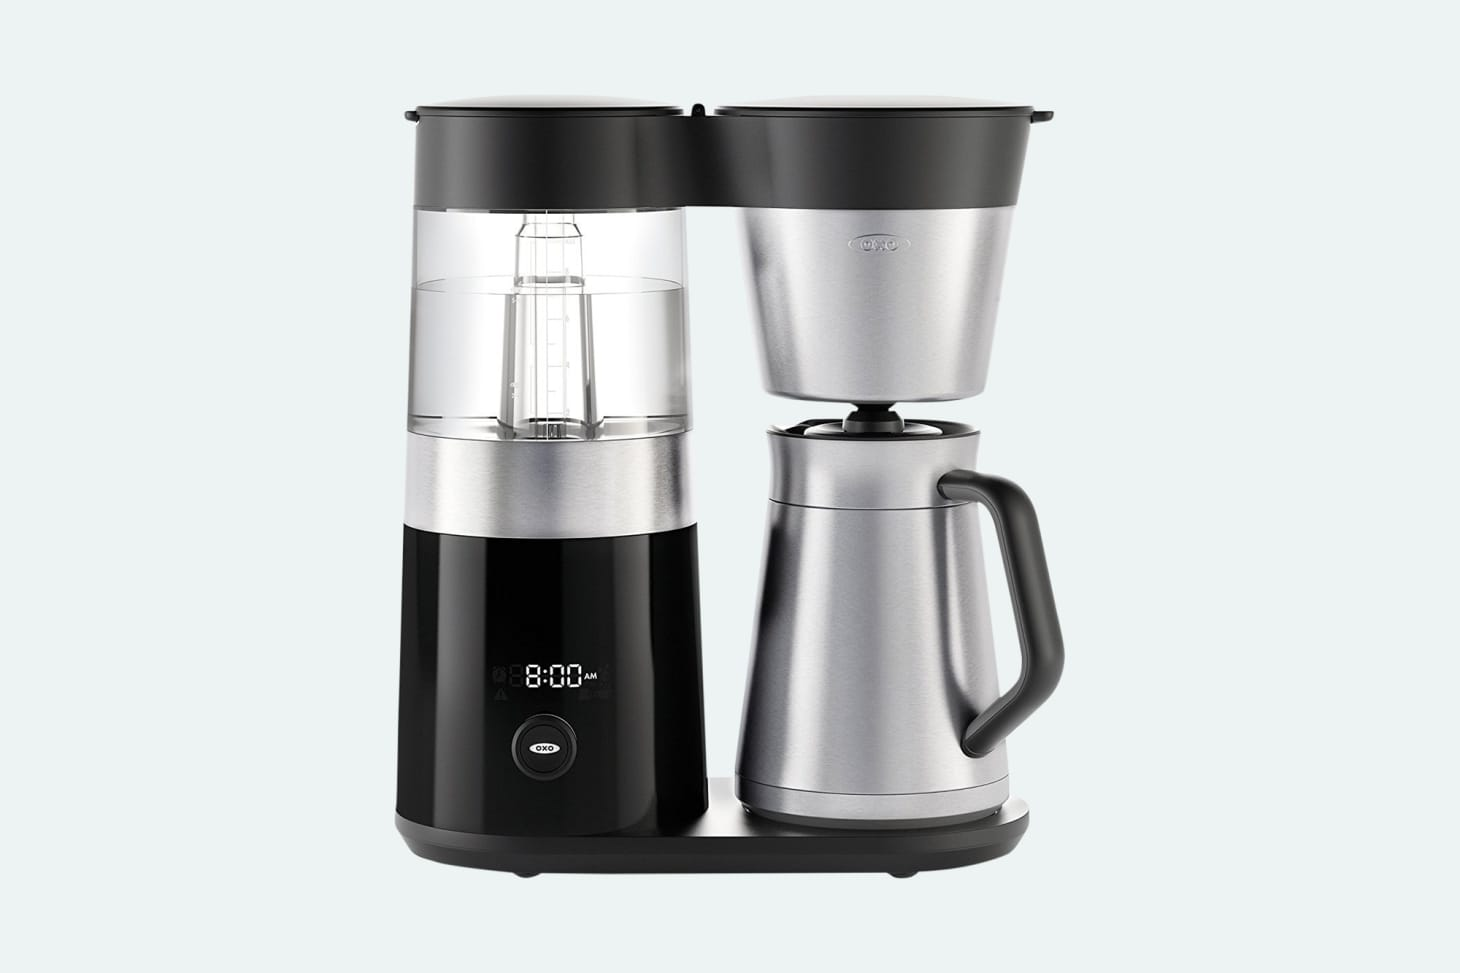 The Best Coffee Makers - Drip, Espresso, Cold Brew